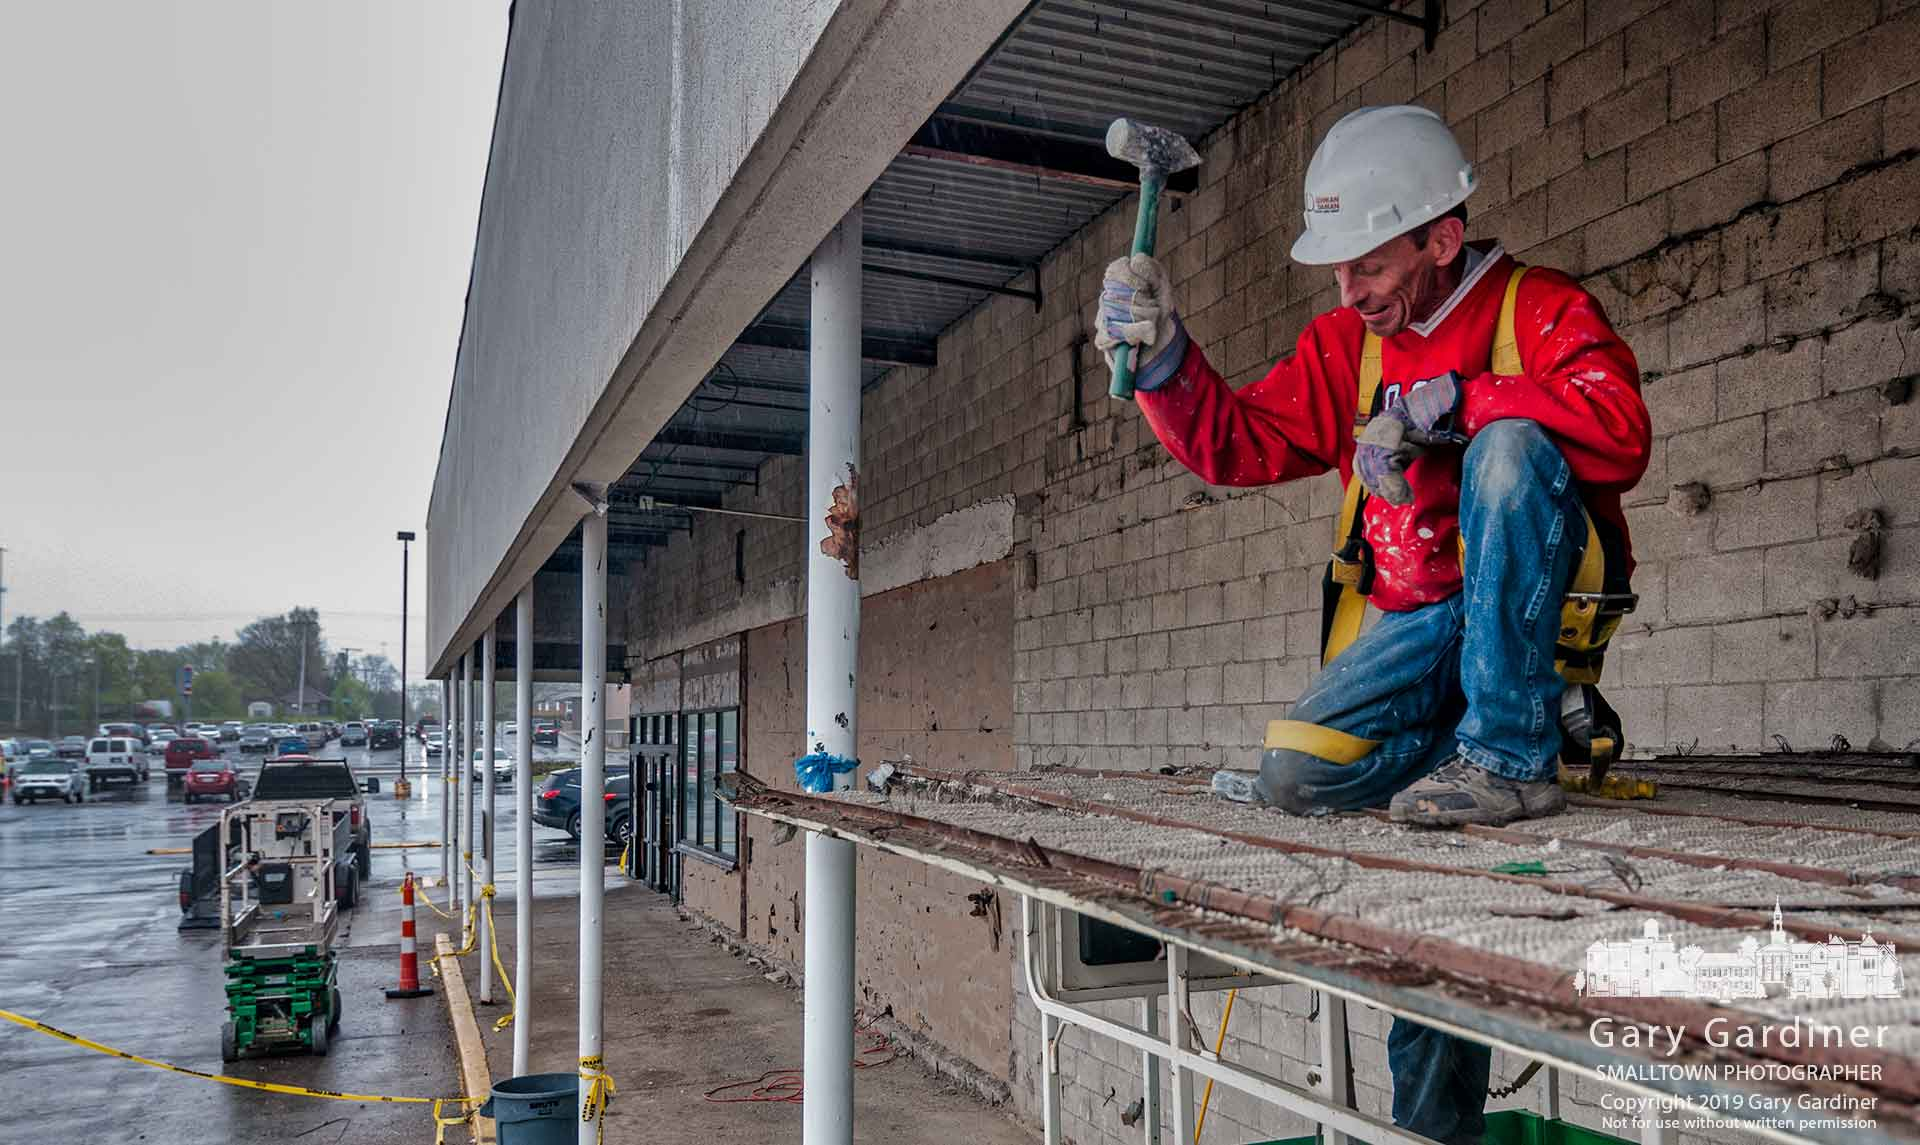 A construction worker hammers away a section of steel and stucco that made up the covering of the sidewalks at Glengary Shopping Center as work continued Friday upgrading and renovating the center. My Final Photo for April 19, 2019.